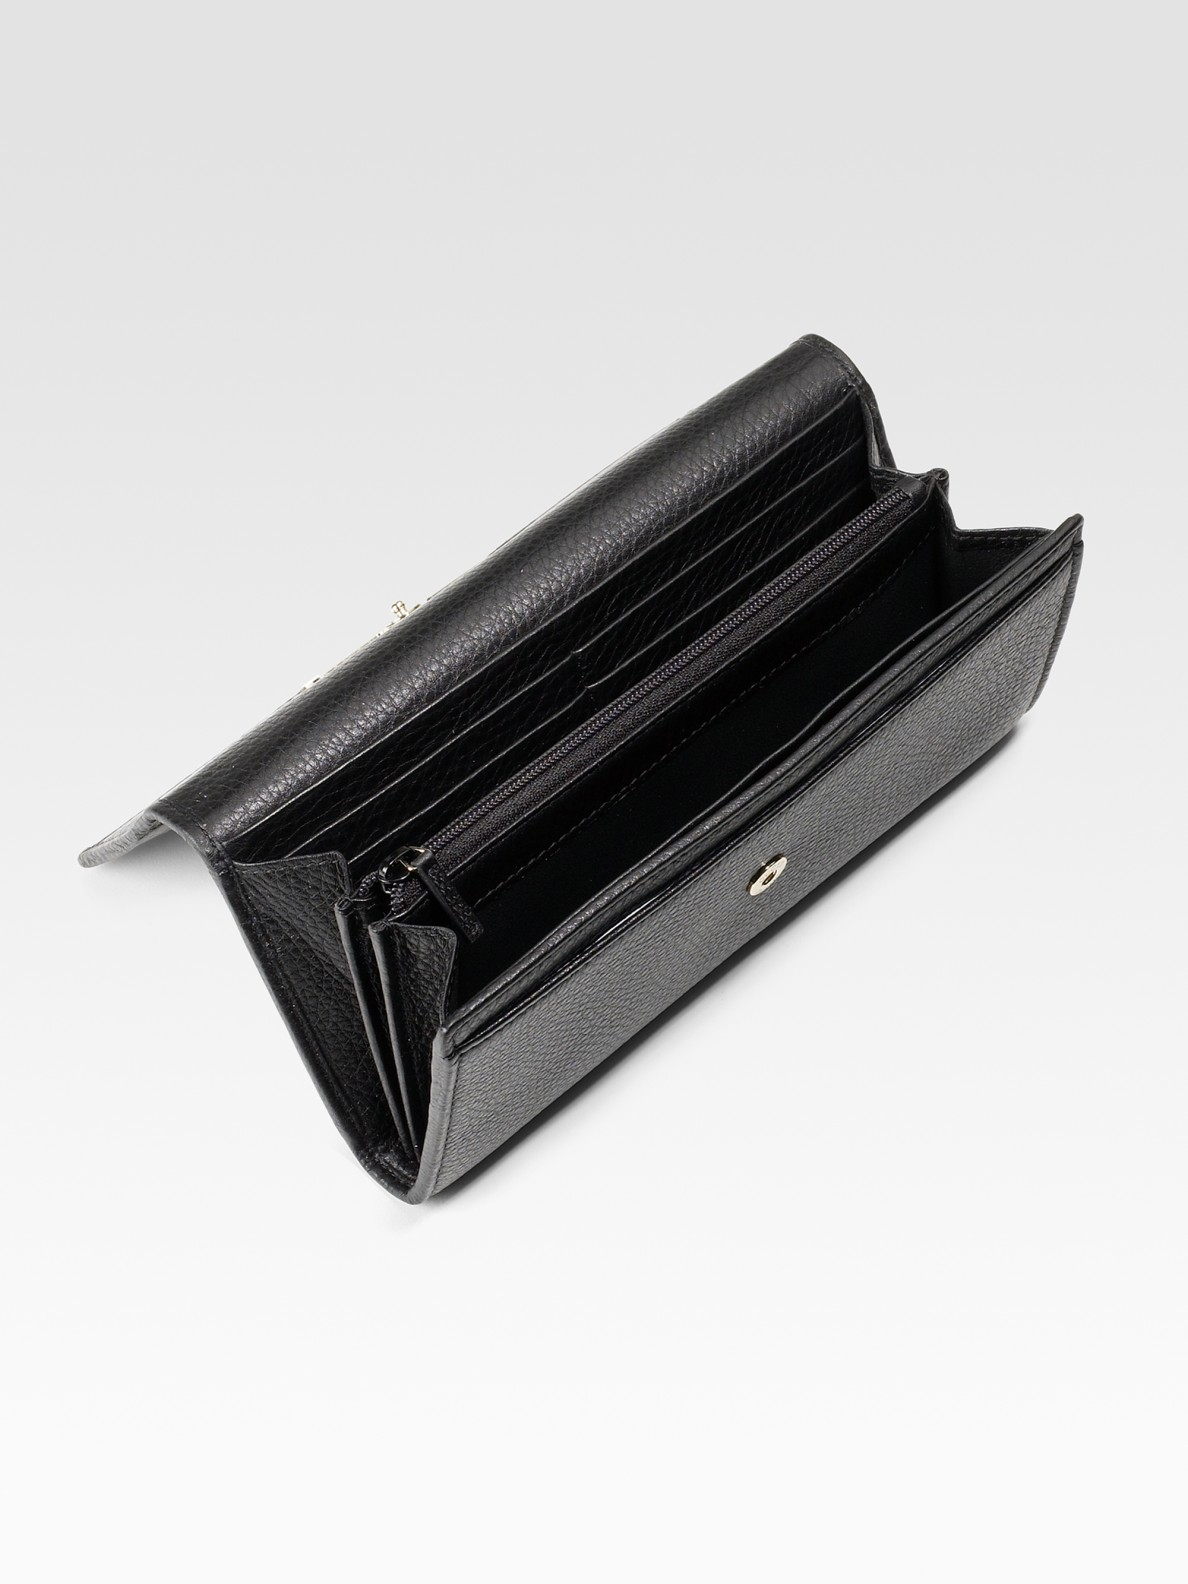 91c088a7693c3a Gucci Bamboo Continental Leather Wallet in Black - Lyst